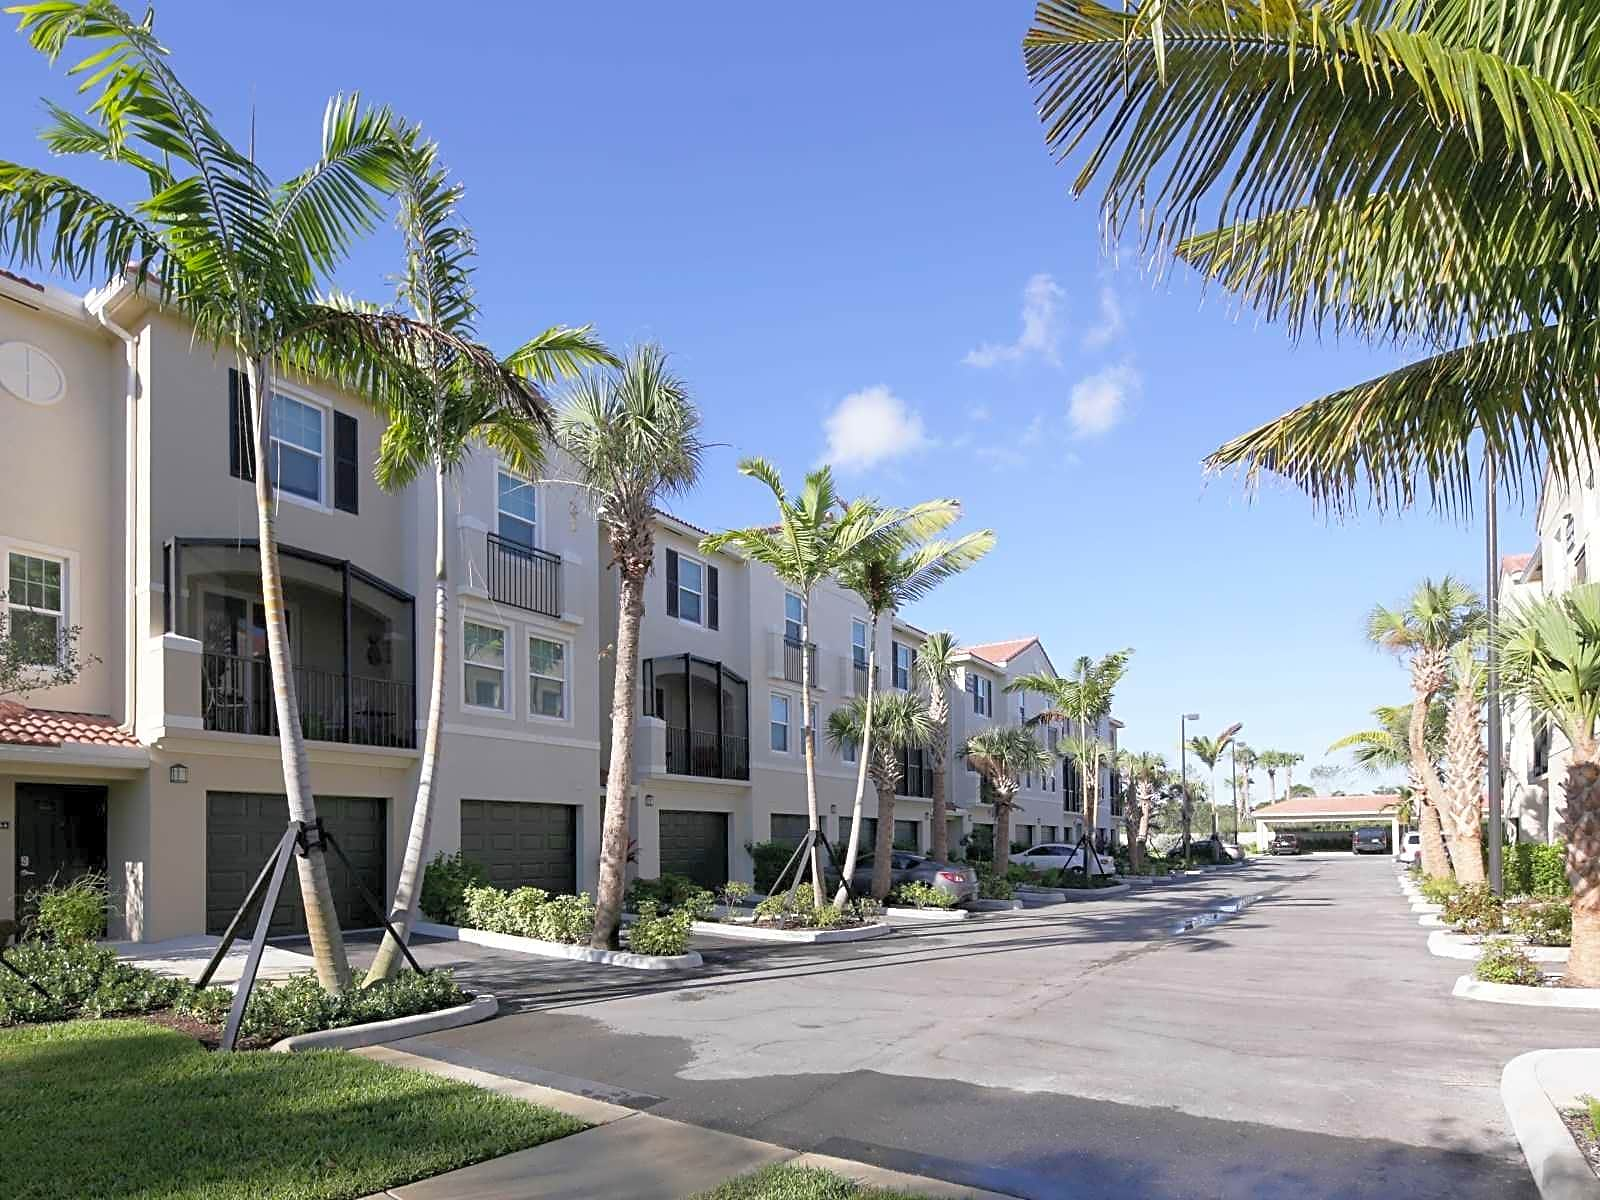 Apartments And Houses For Rent In Boynton Beach